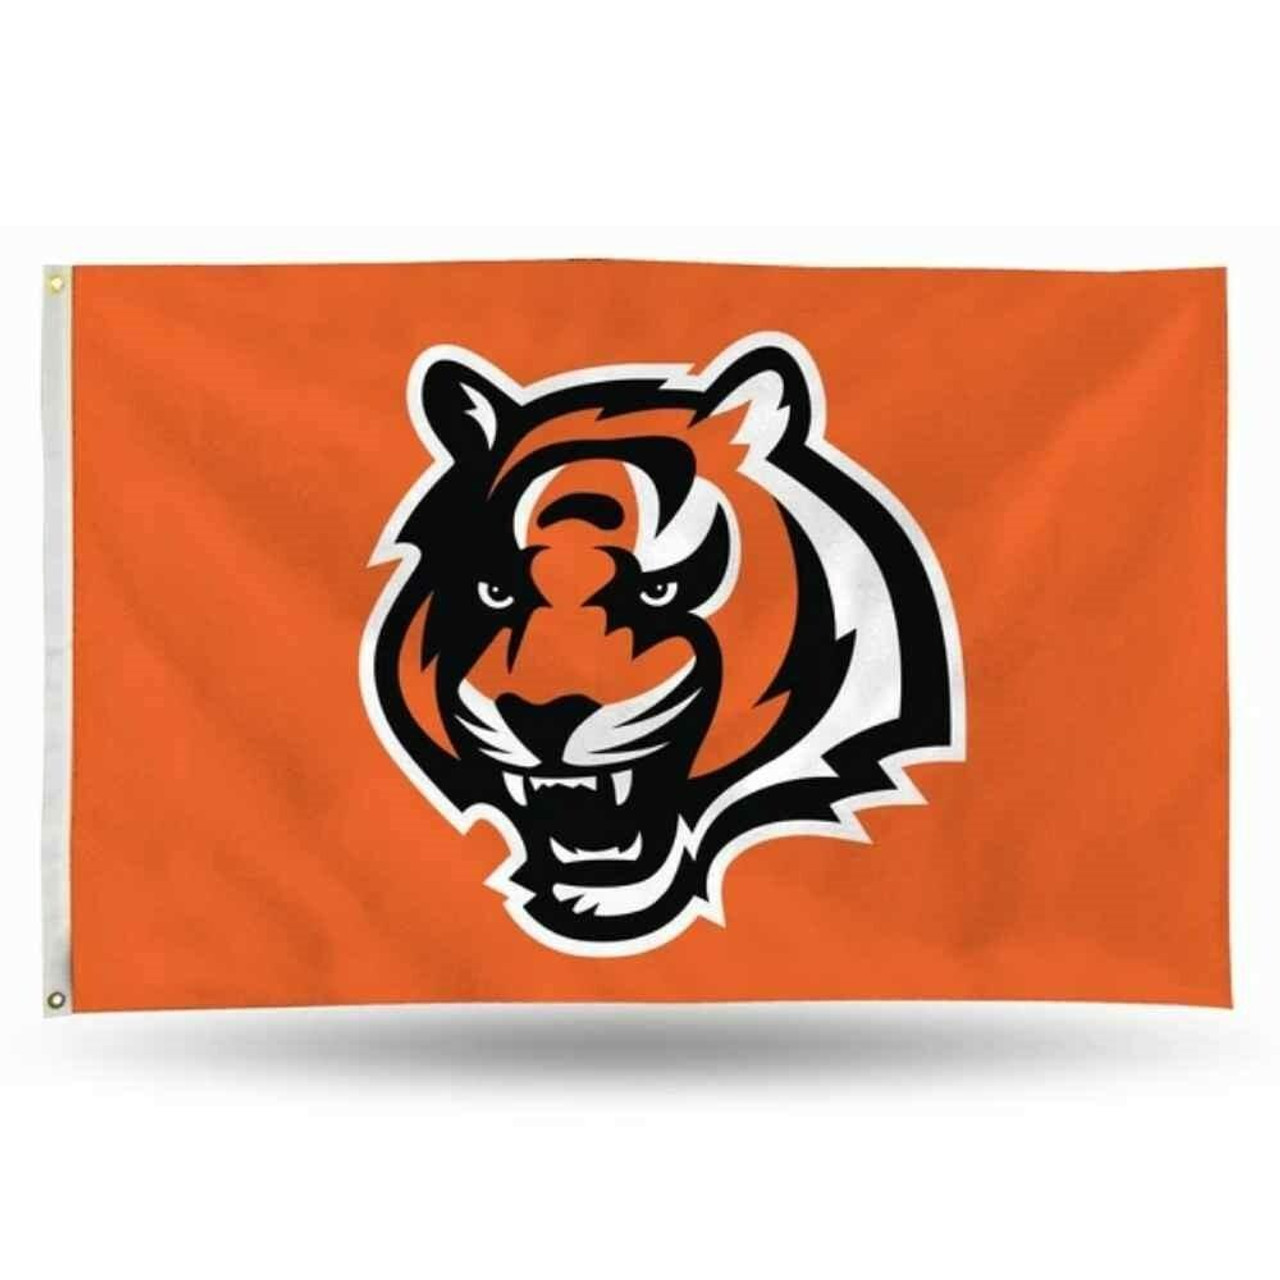 The Cincinnati Bengals flag has a bright orange background and a large bengal face in the center of the flag